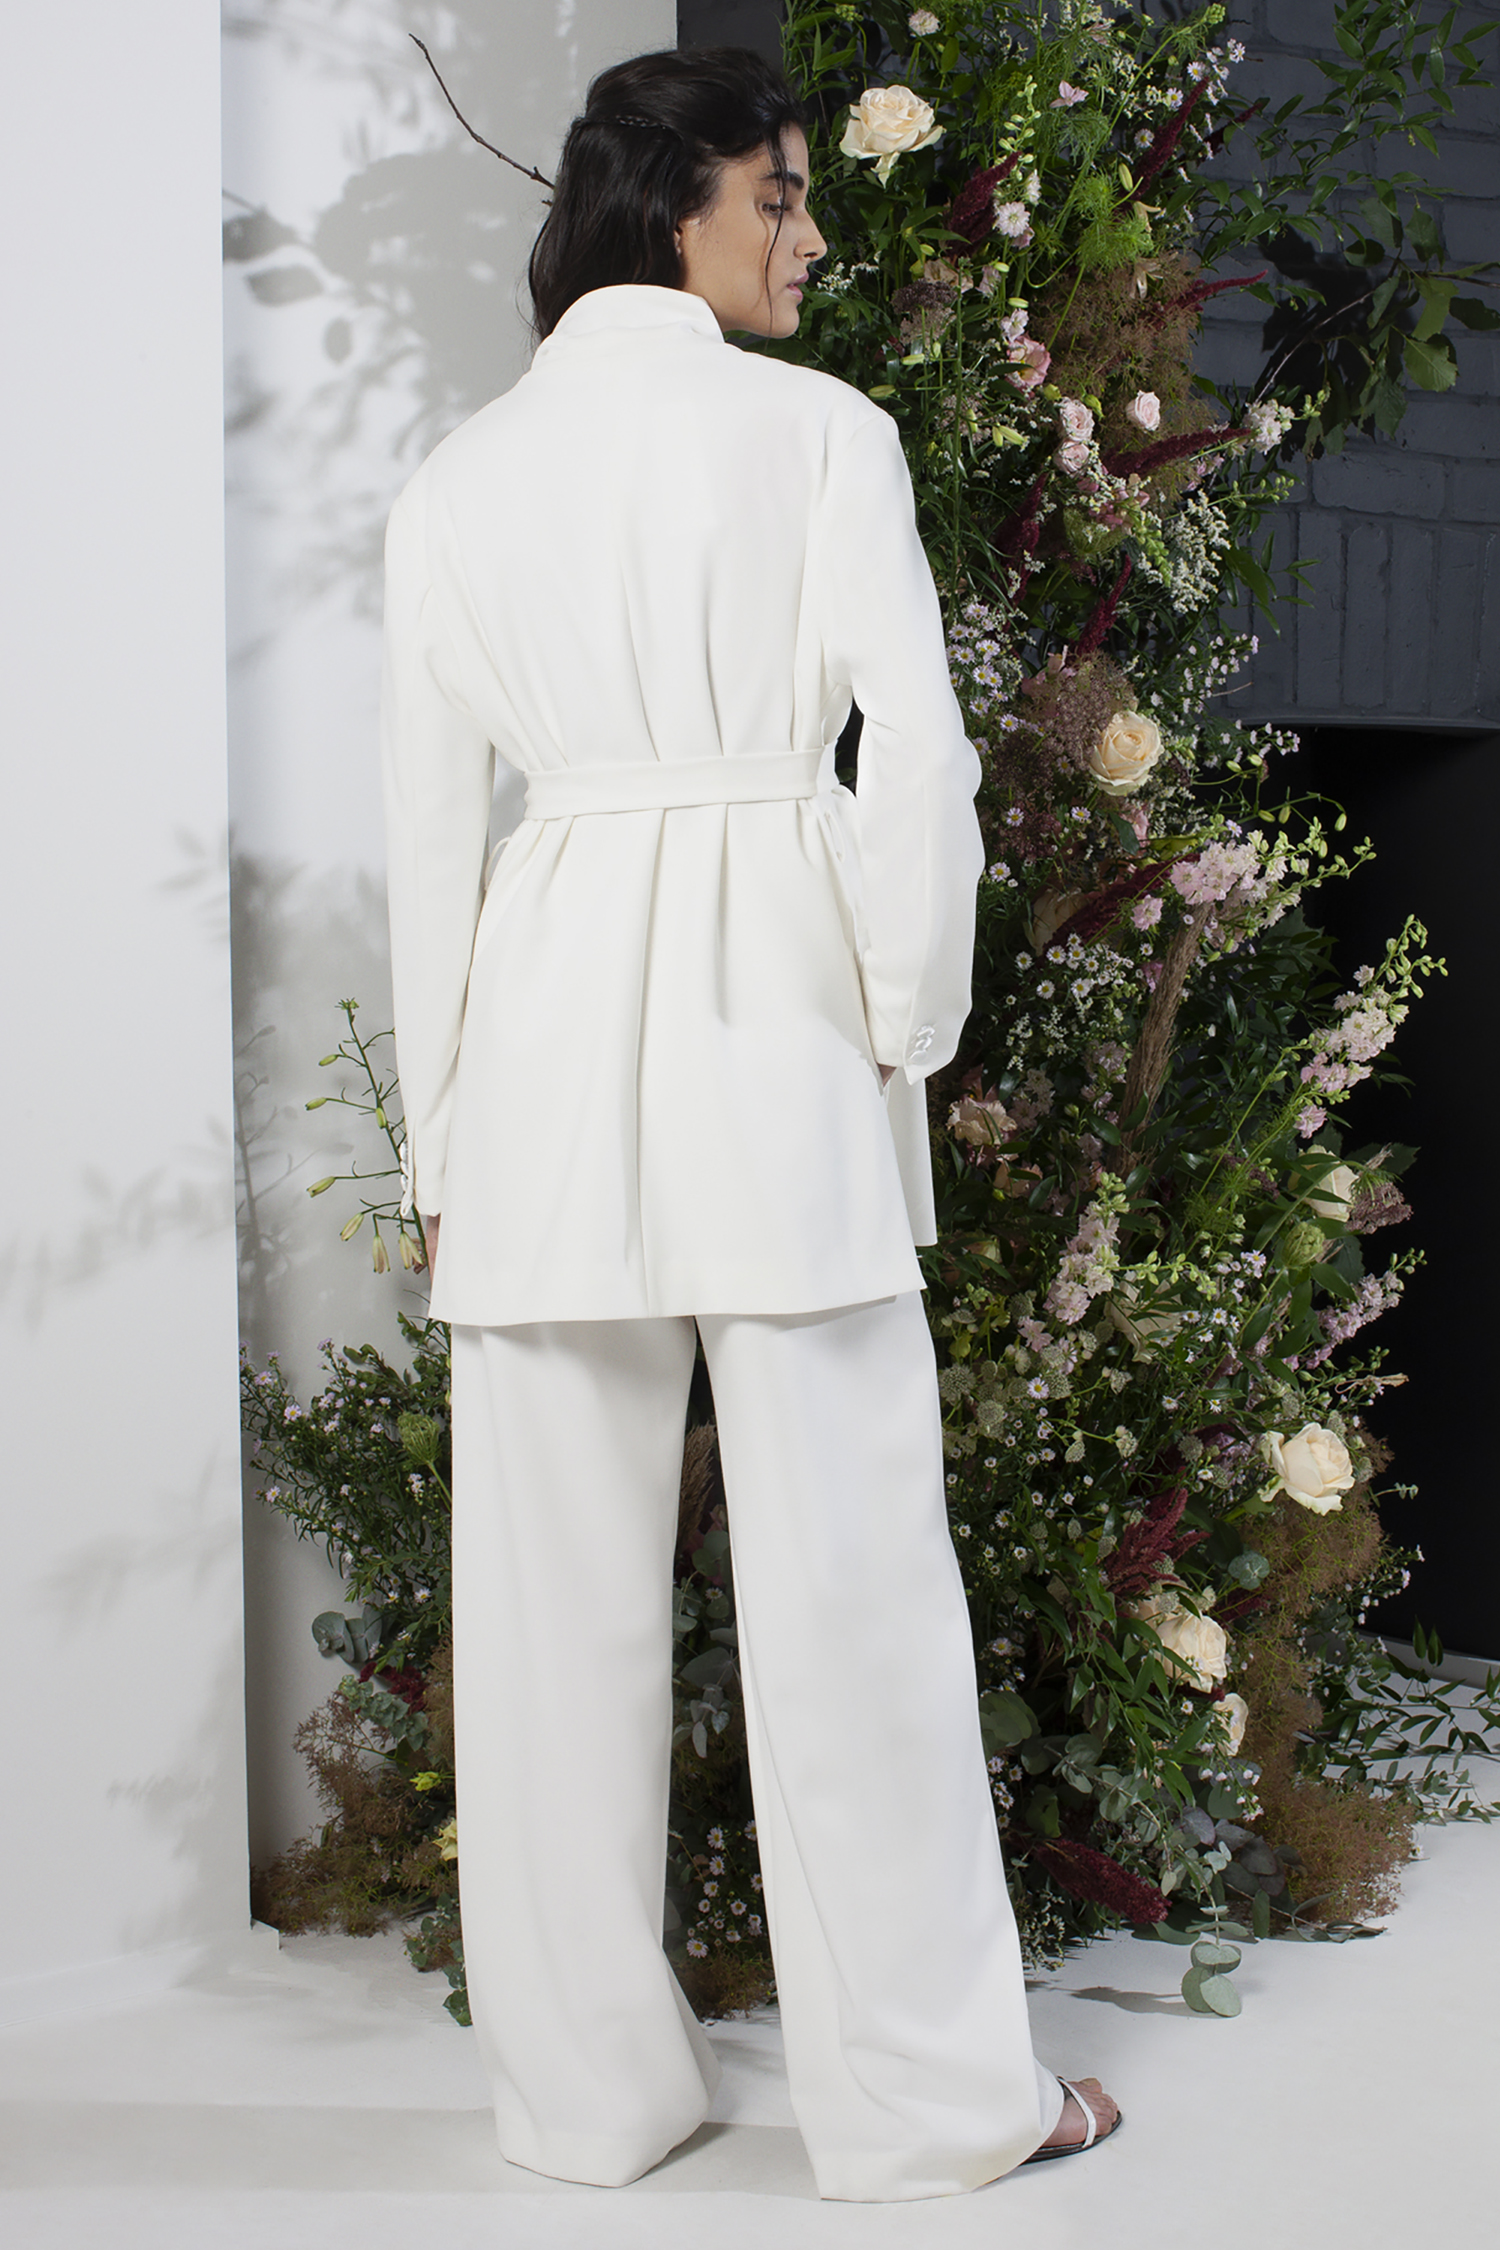 Amato Tux Tailored Wedding Suit Jacket Collections French Connection